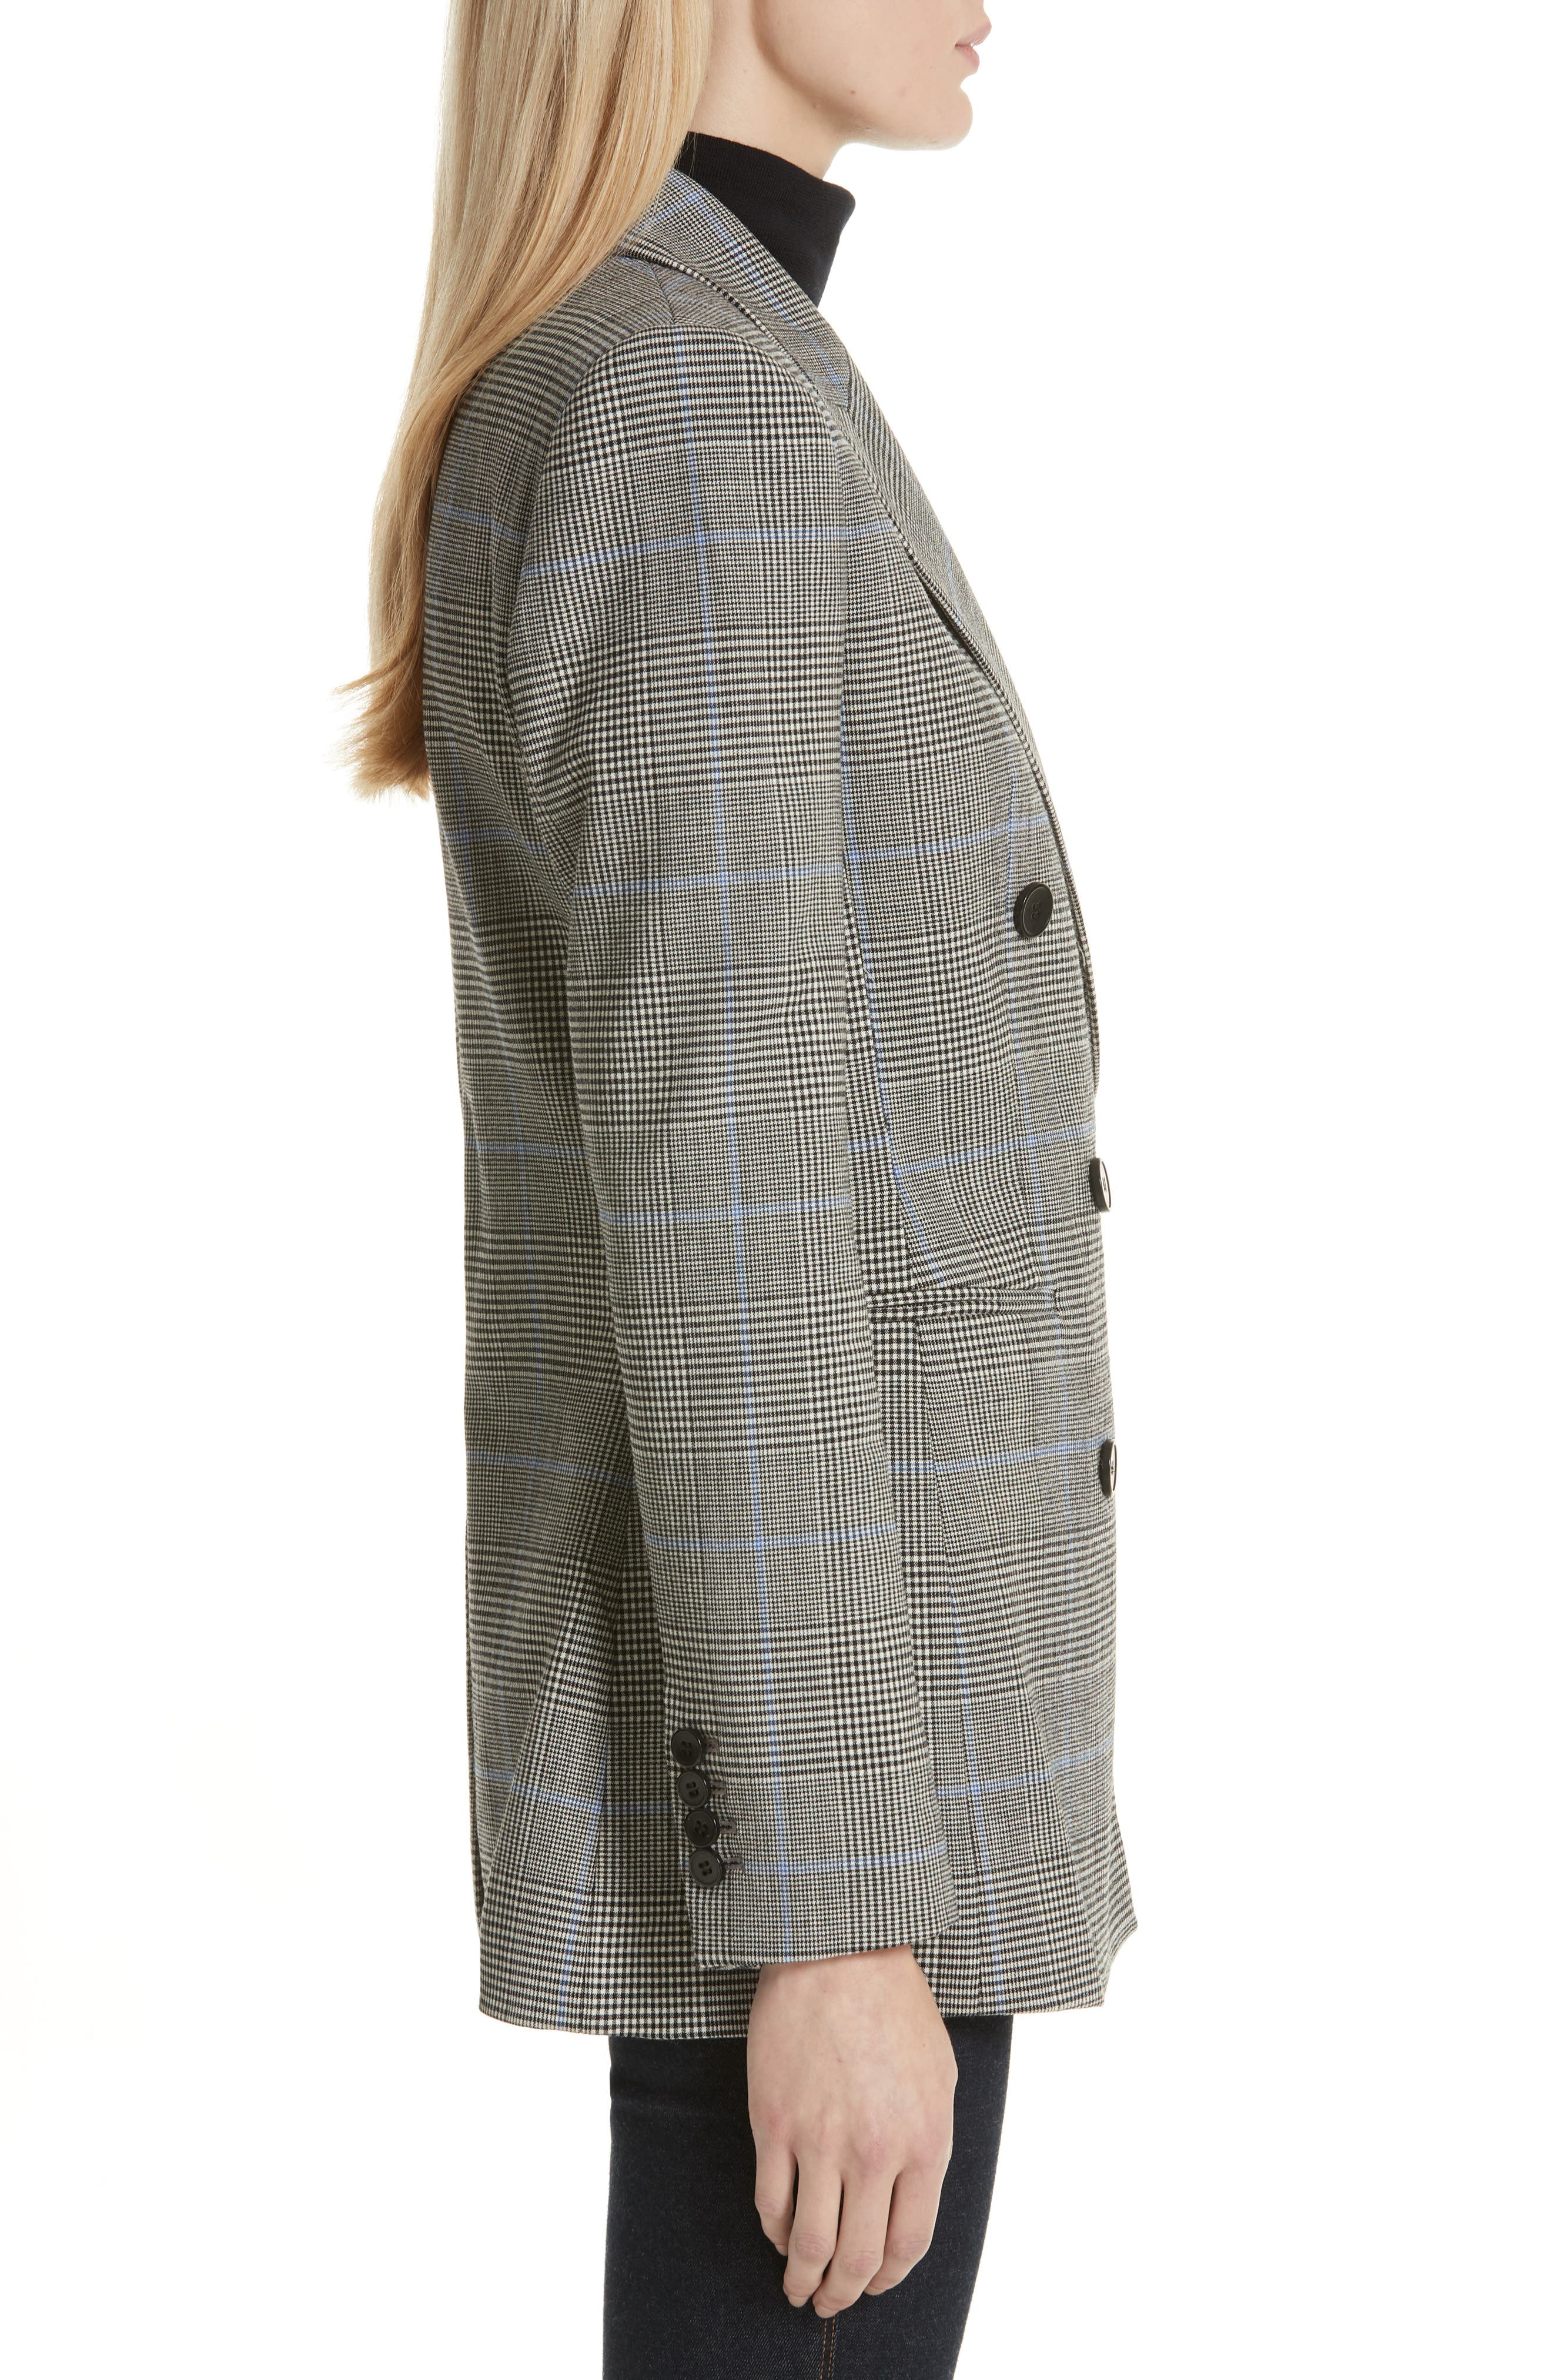 THEORY,                             Portland Plaid Power Jacket,                             Alternate thumbnail 3, color,                             020